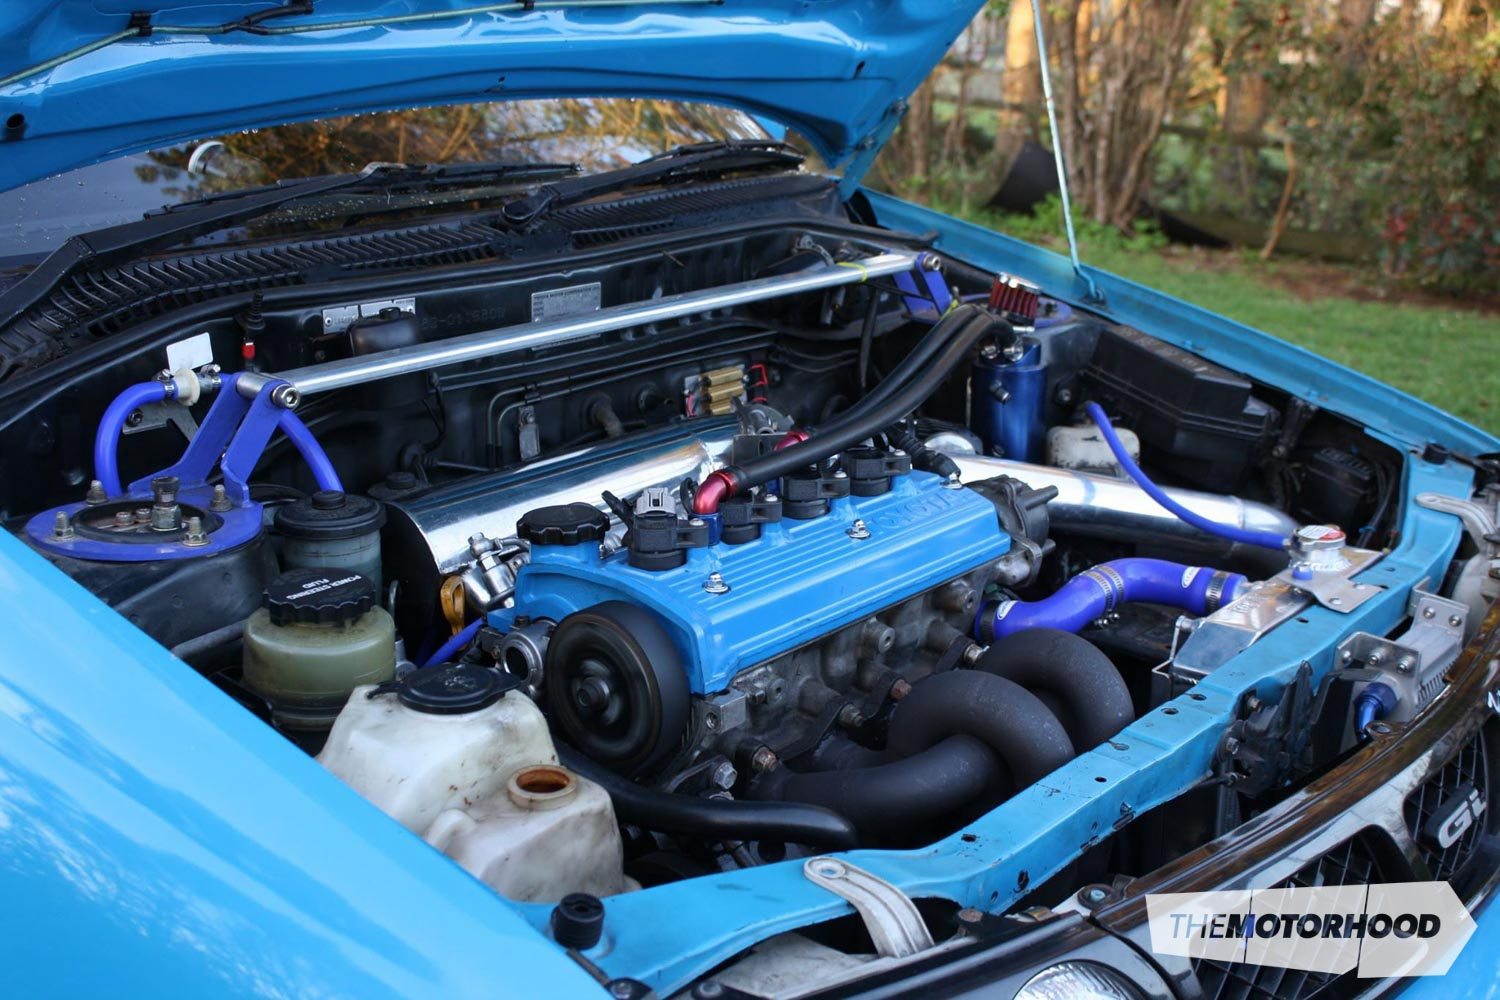 Scrapyard Gains: considering building a Toyota Starlet GT